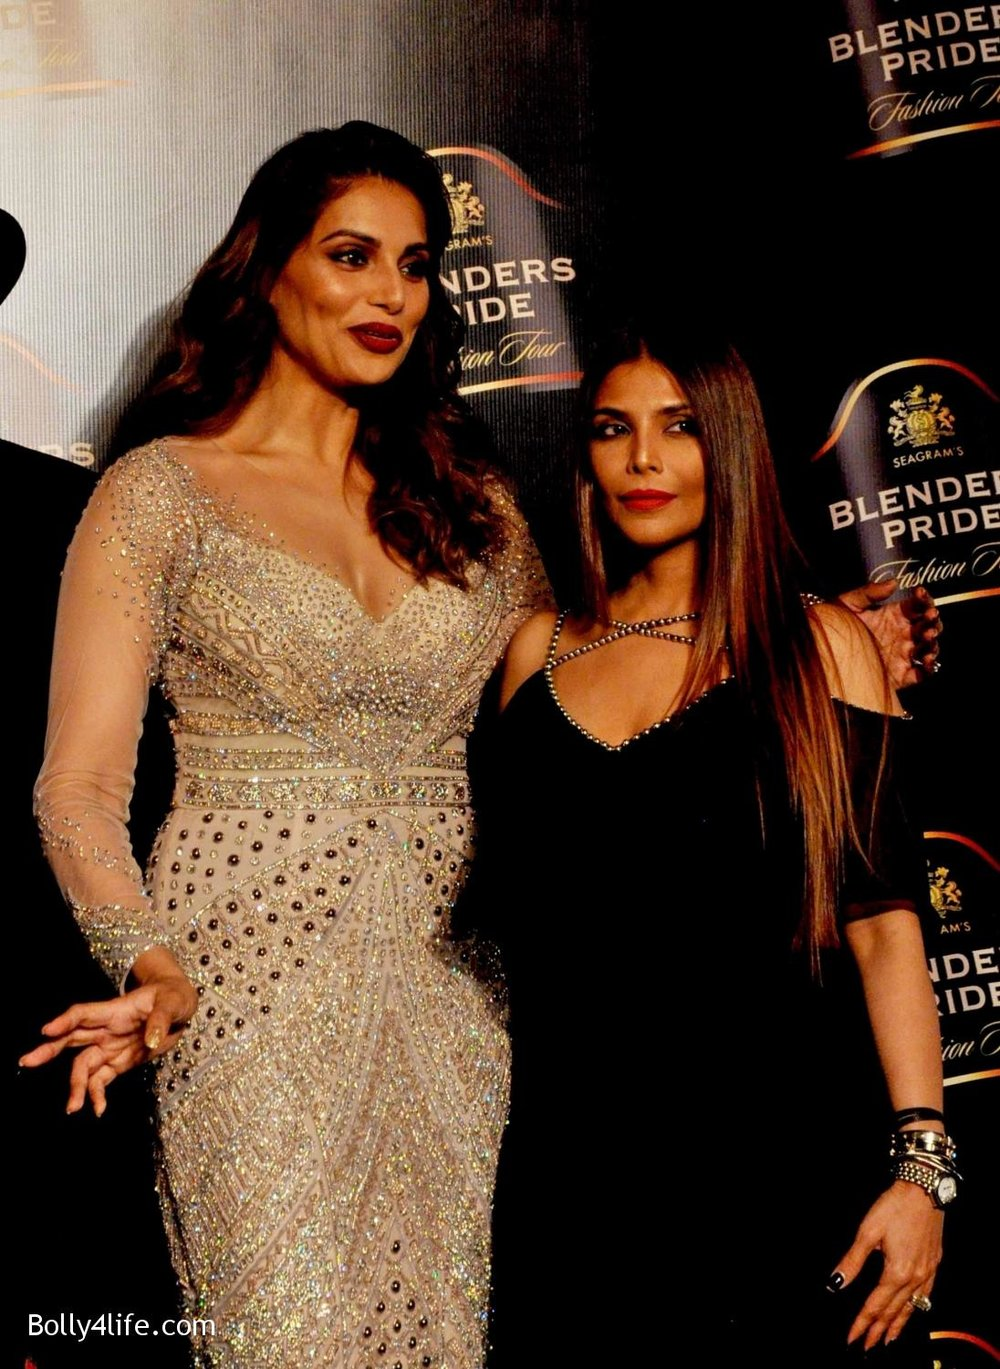 Bipasha-Basu-walks-the-ramp-during-Blenders-Pride-Fashion-Tour-2016-in-Kolkata-9.jpg